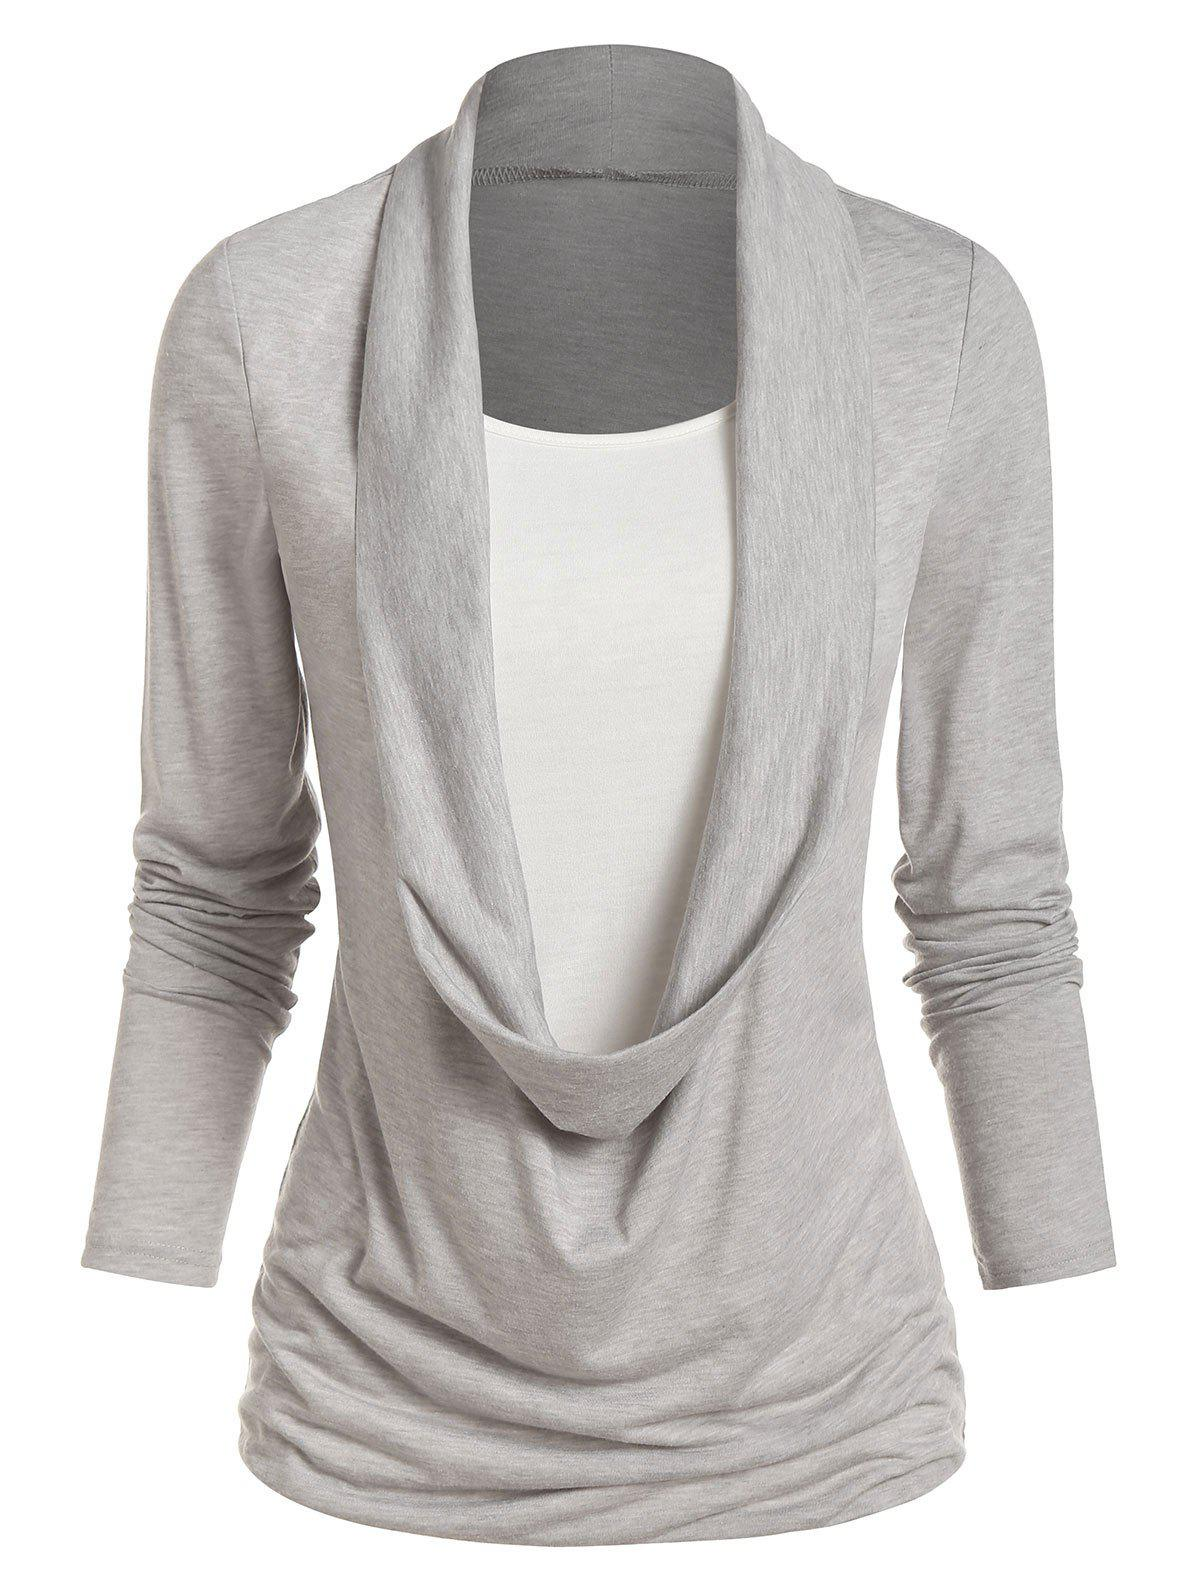 Long Sleeve Heathered Faux Twinset Casual T-shirt - GRAY GOOSE XL